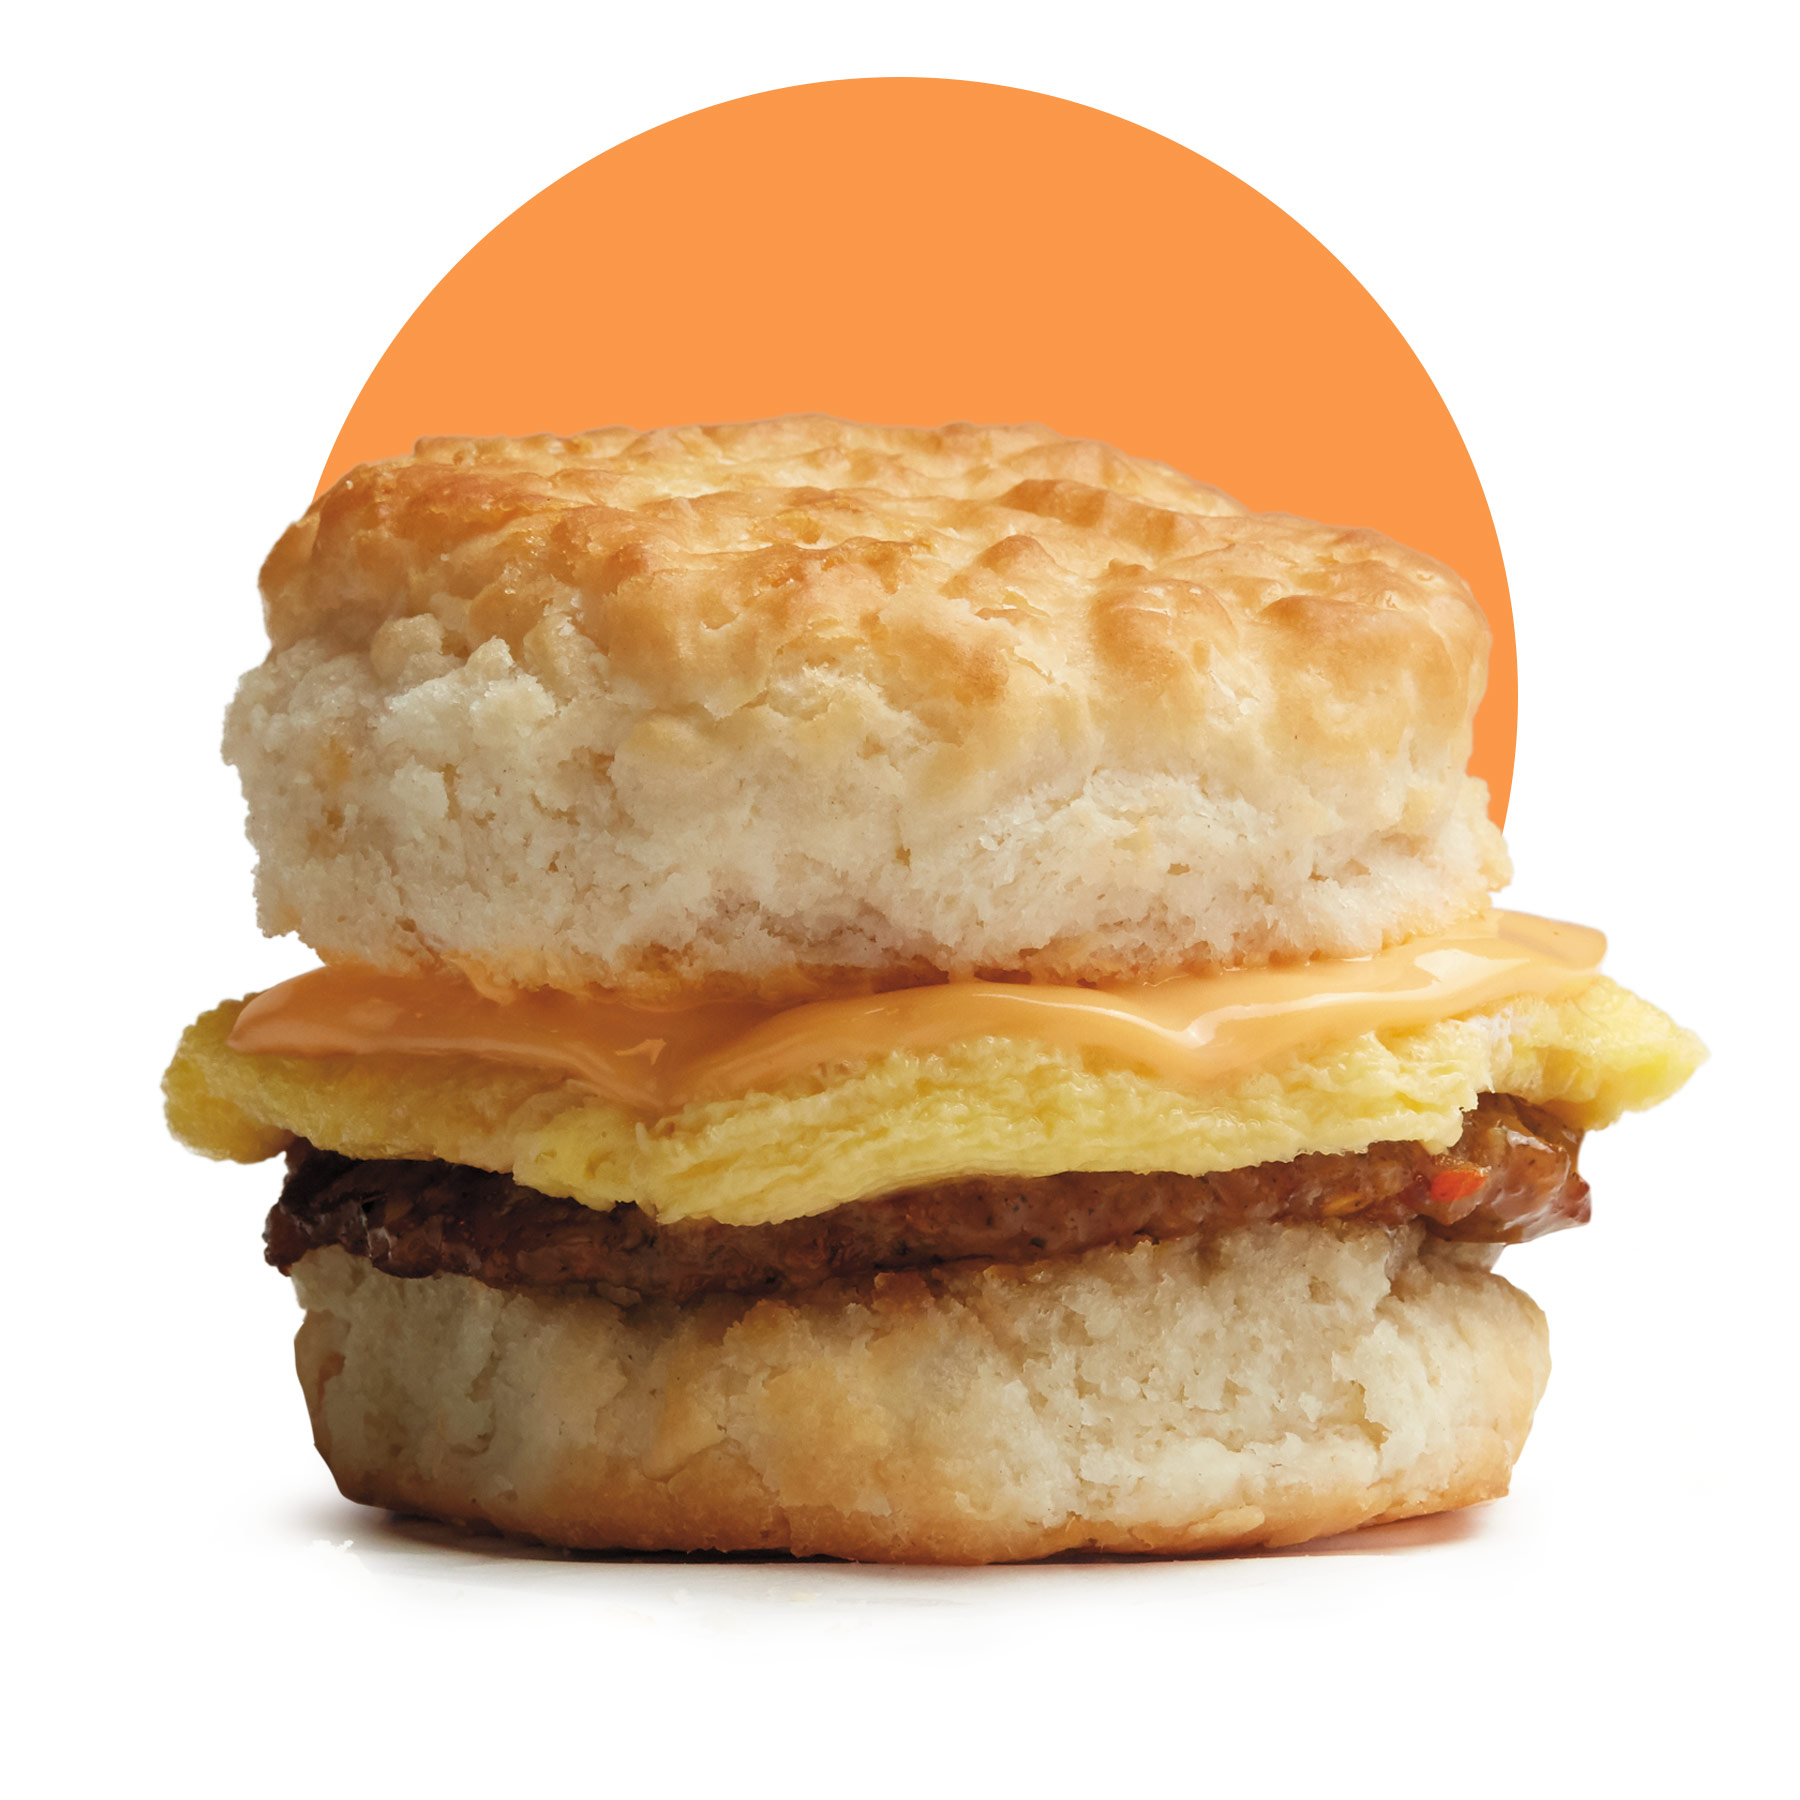 7-Eleven-Breakfast-Sausage-Egg-Cheese-Biscuit.jpg